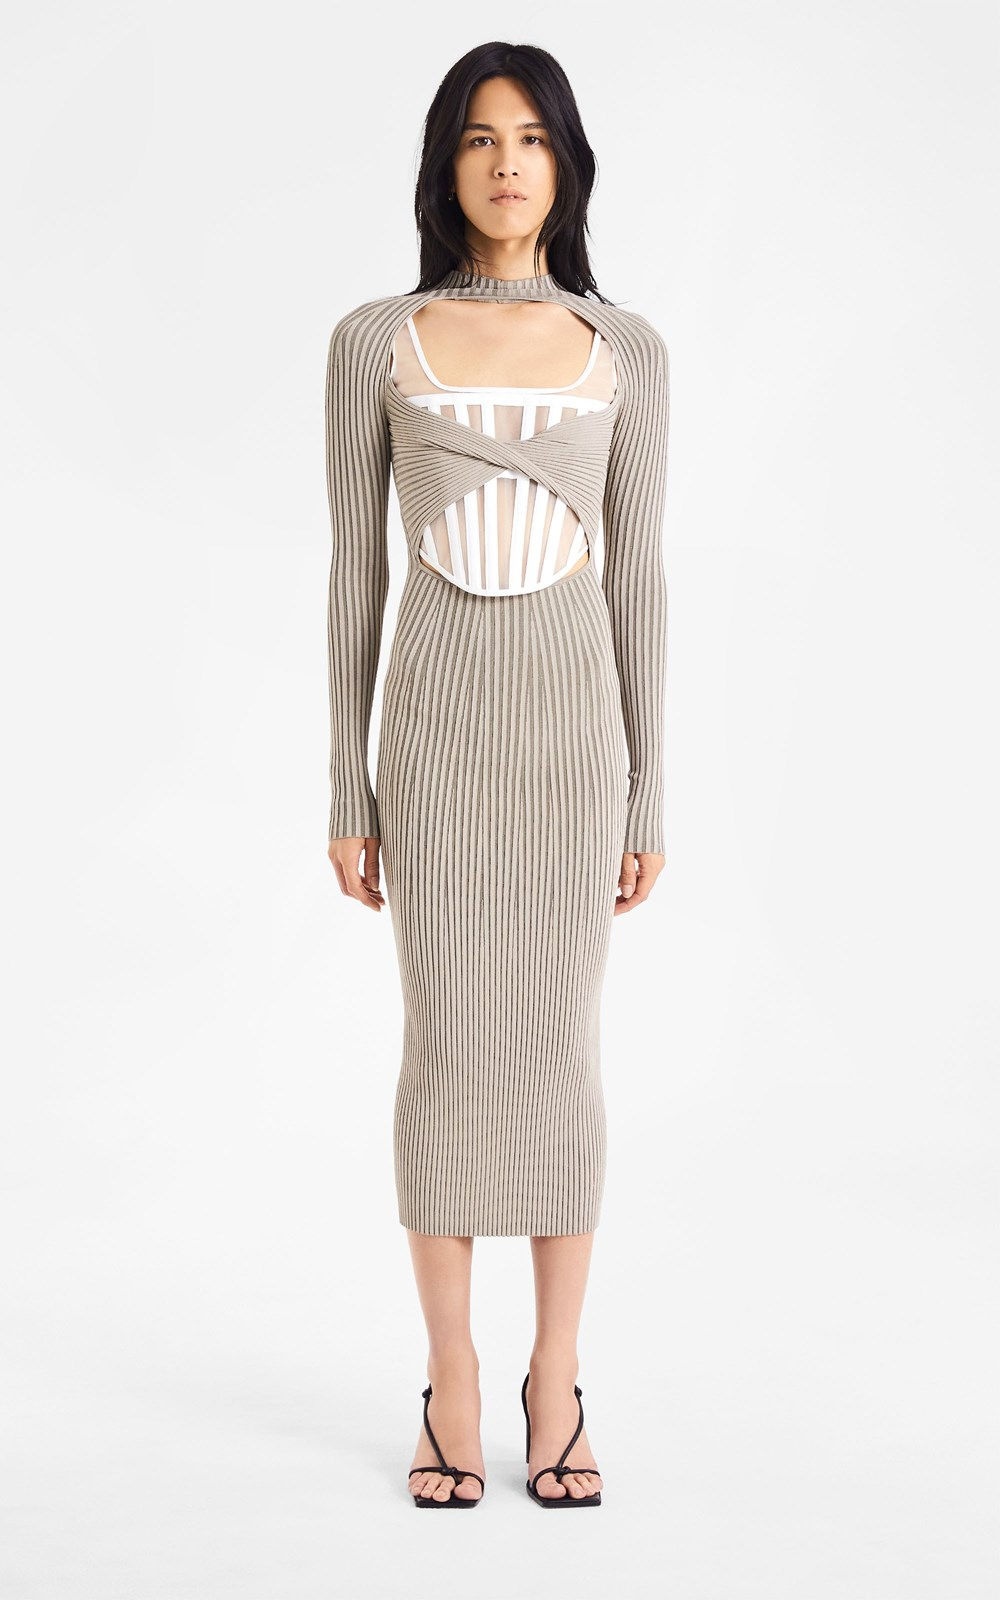 Dresses | STRIPE RIB TWIST DRESS